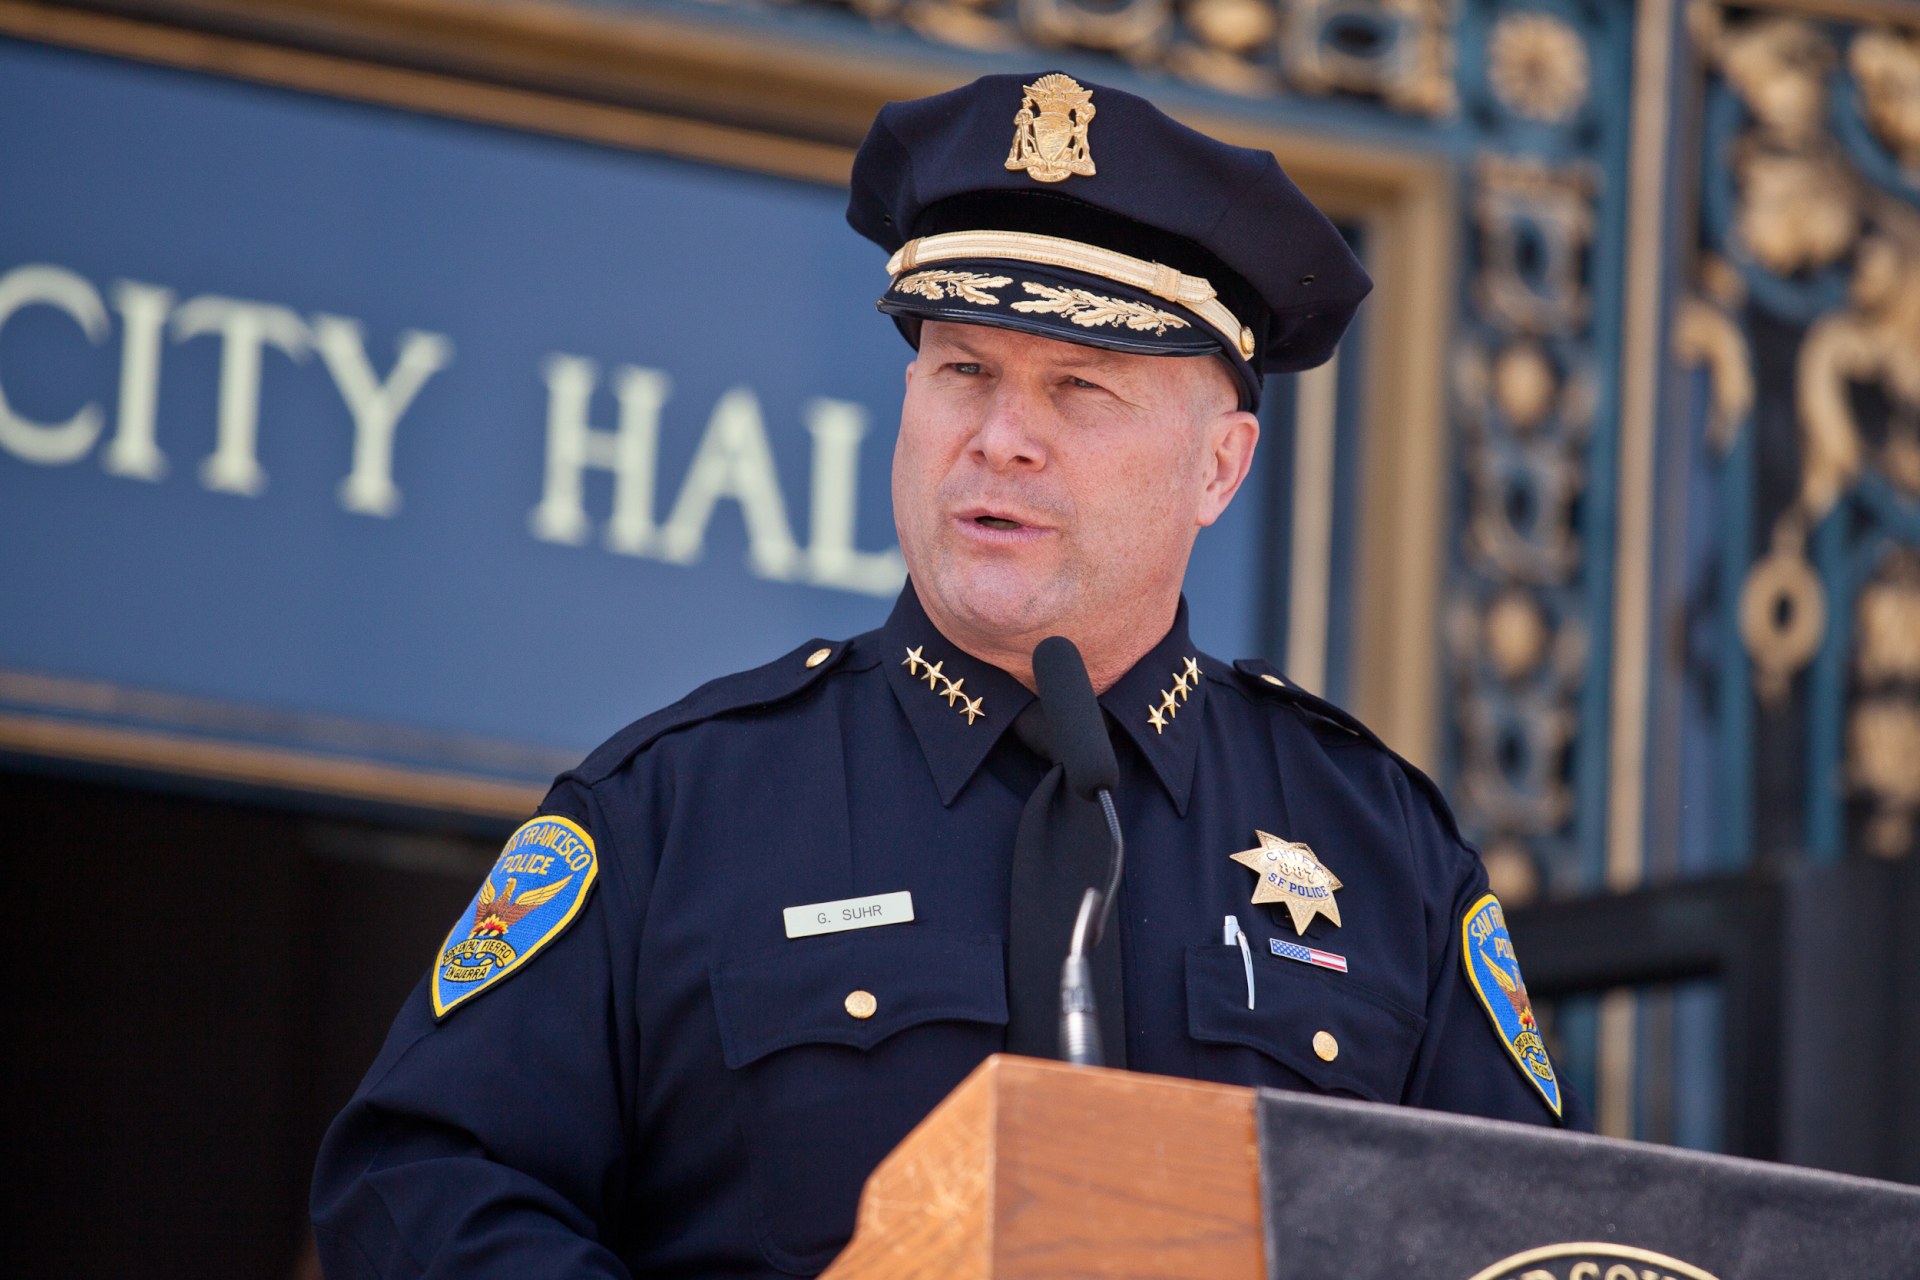 File photo of former SF Police Chief Greg Suhr.